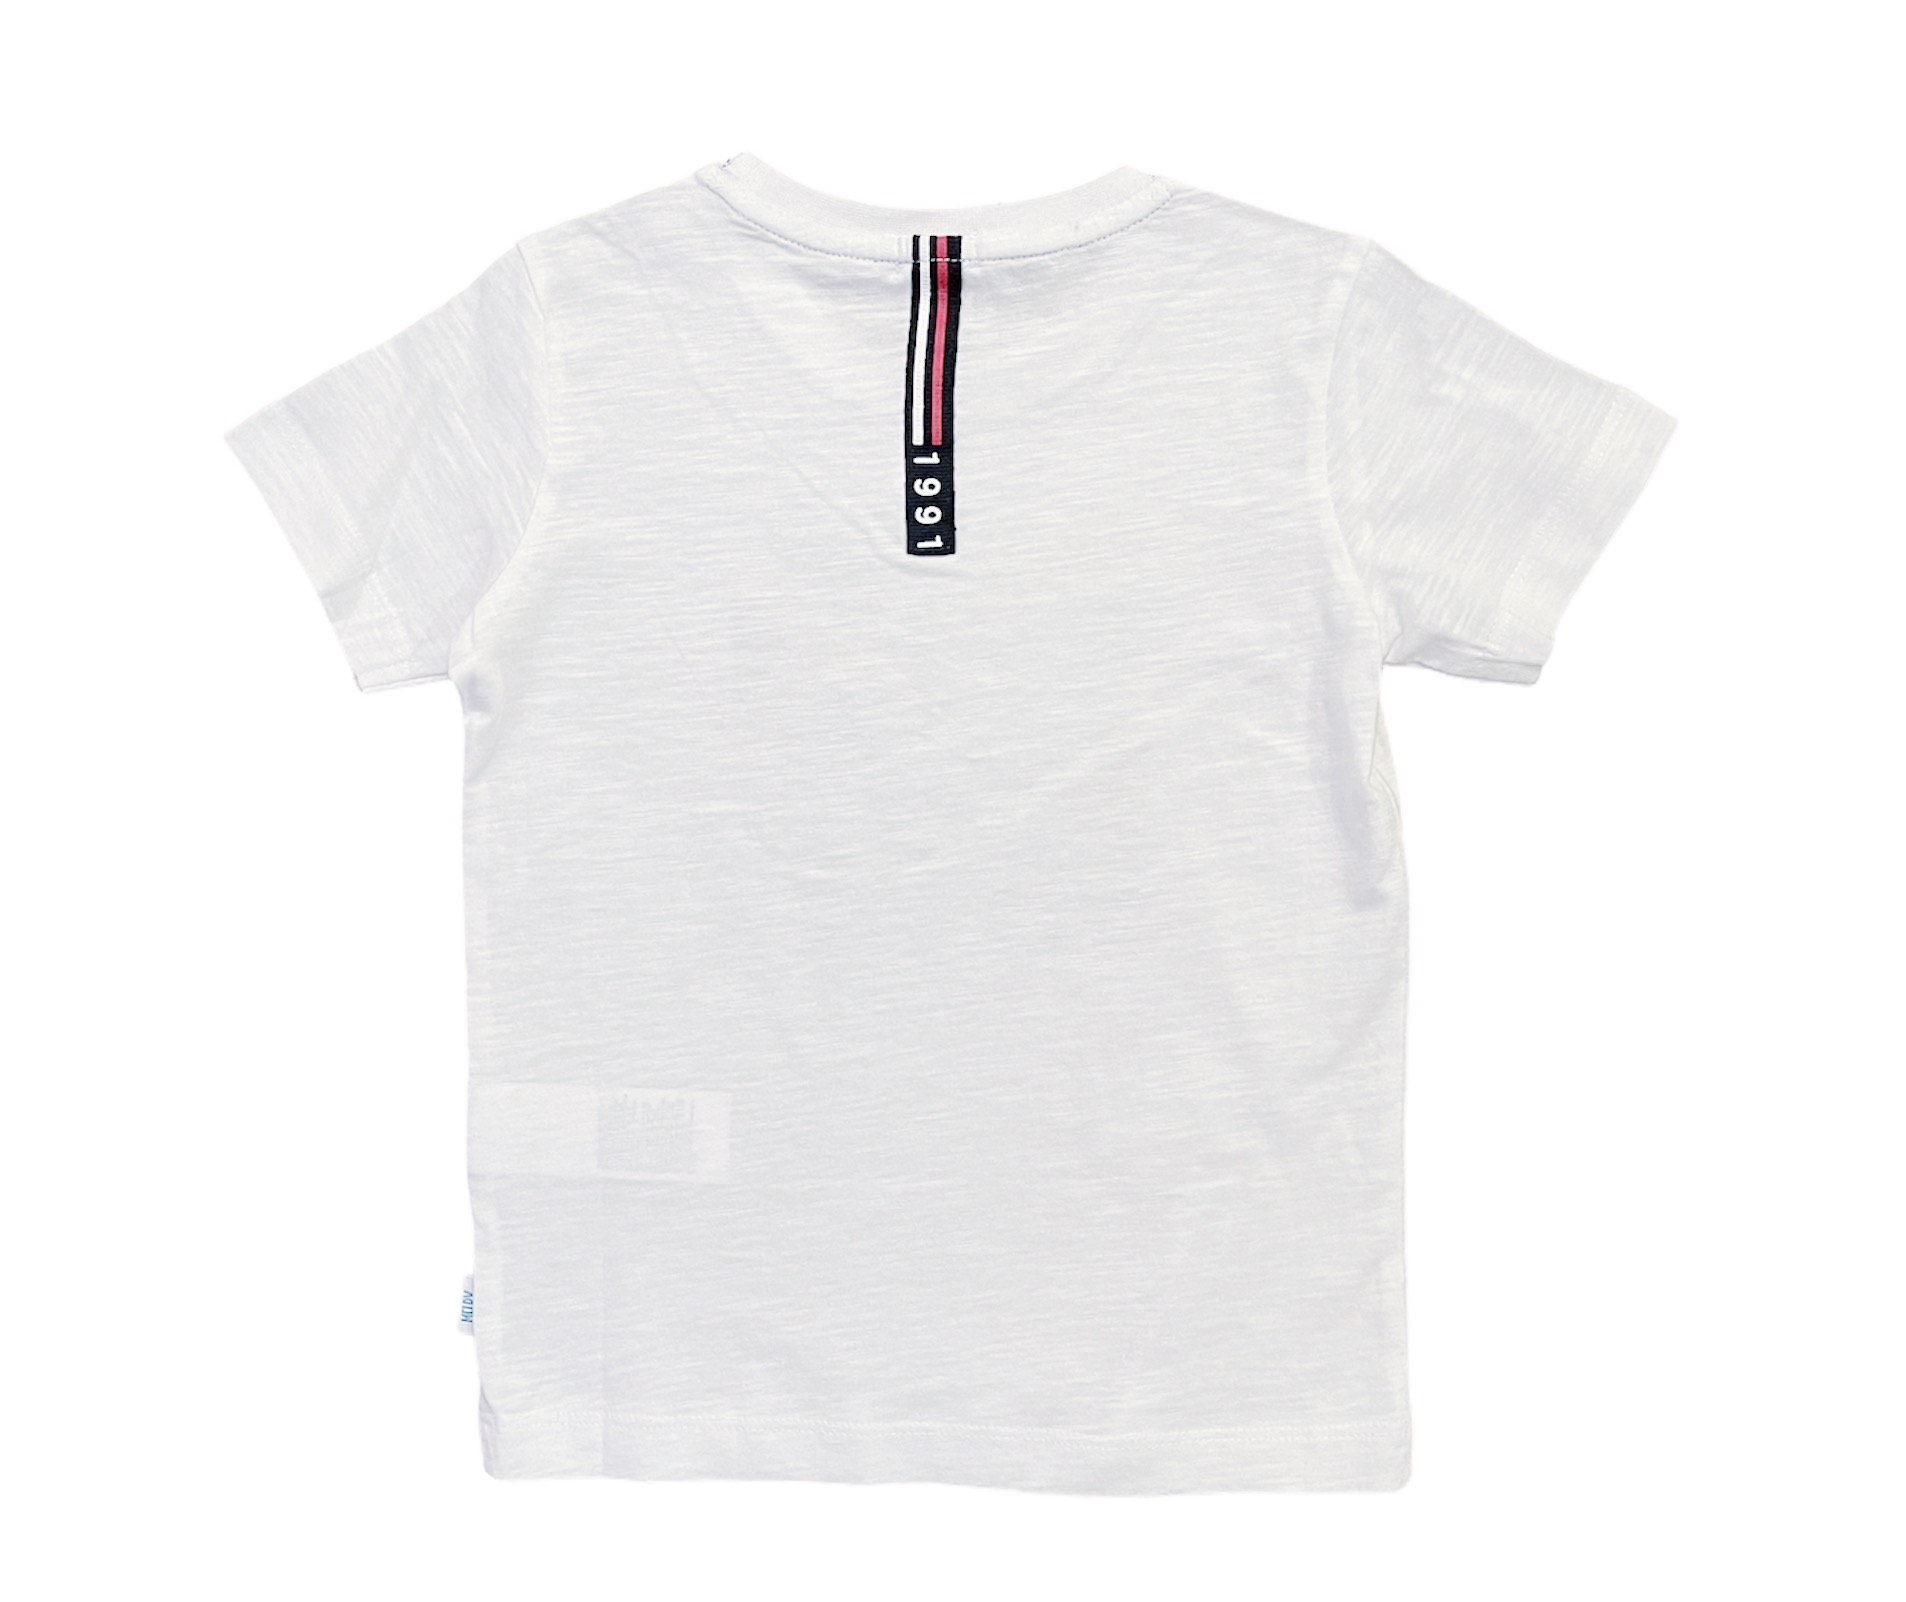 T-SHIRT MELBY OFF SHORE 2